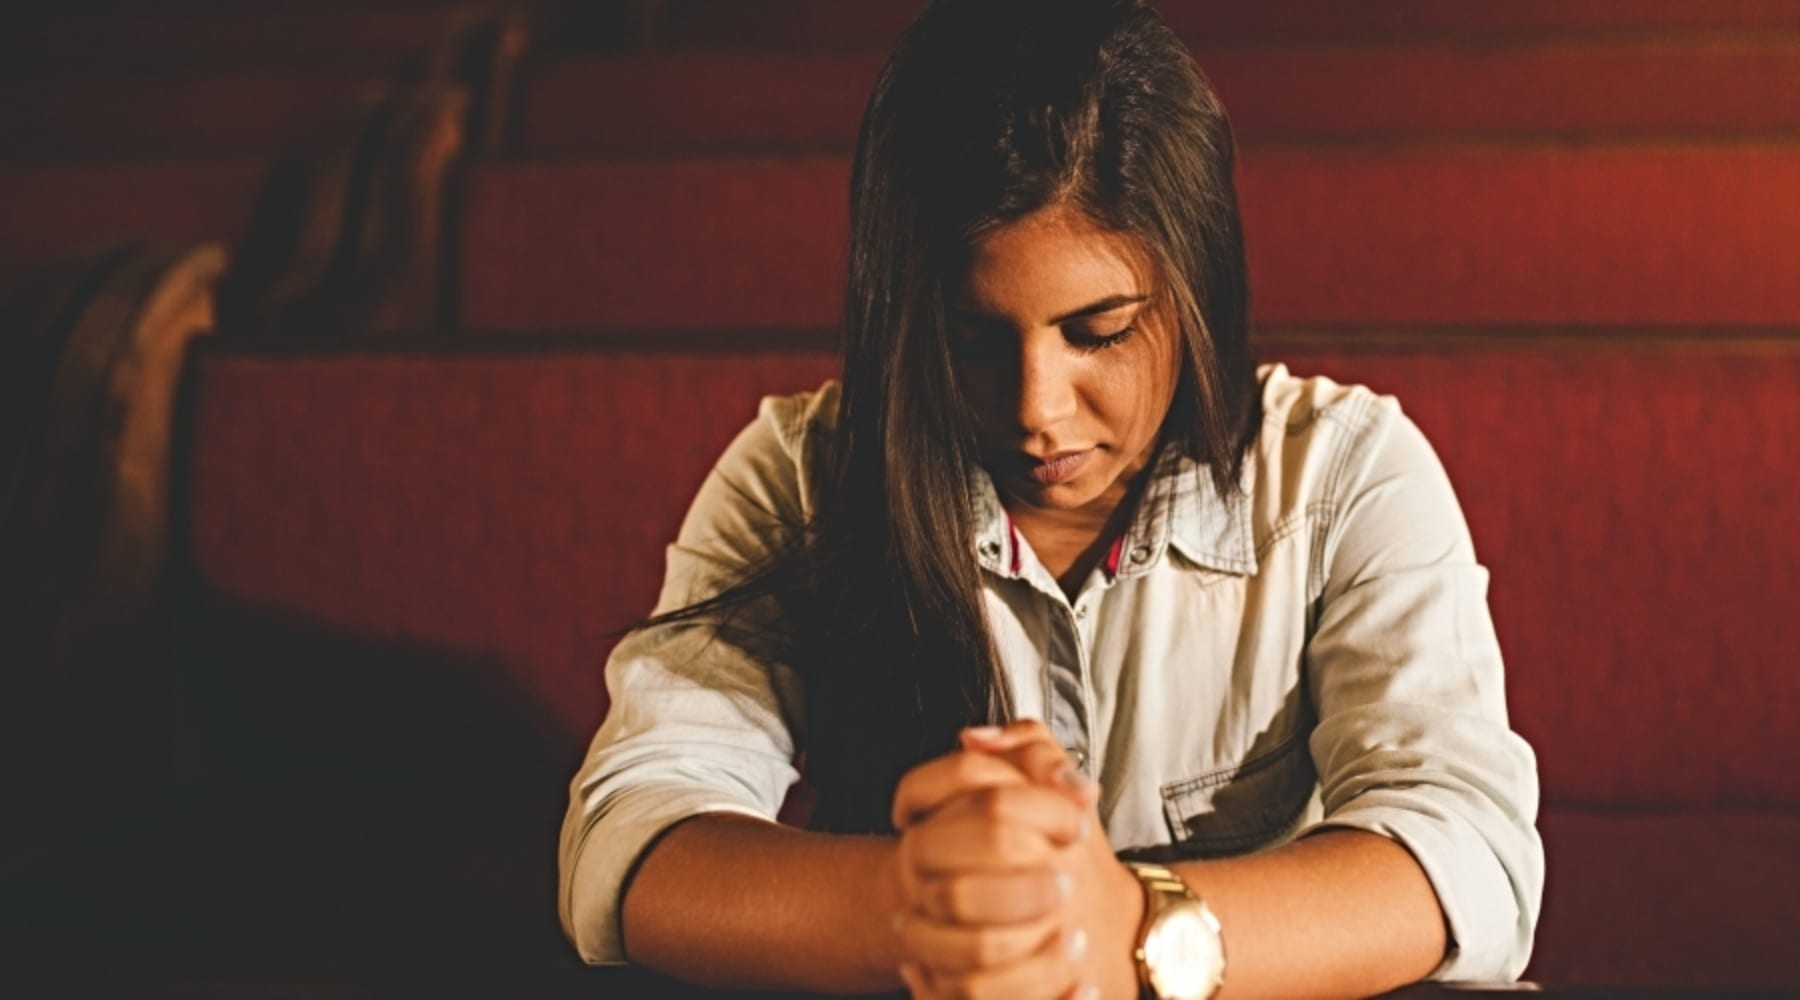 Prayer Less Common in Wealthier Nations, Save for the U.S.